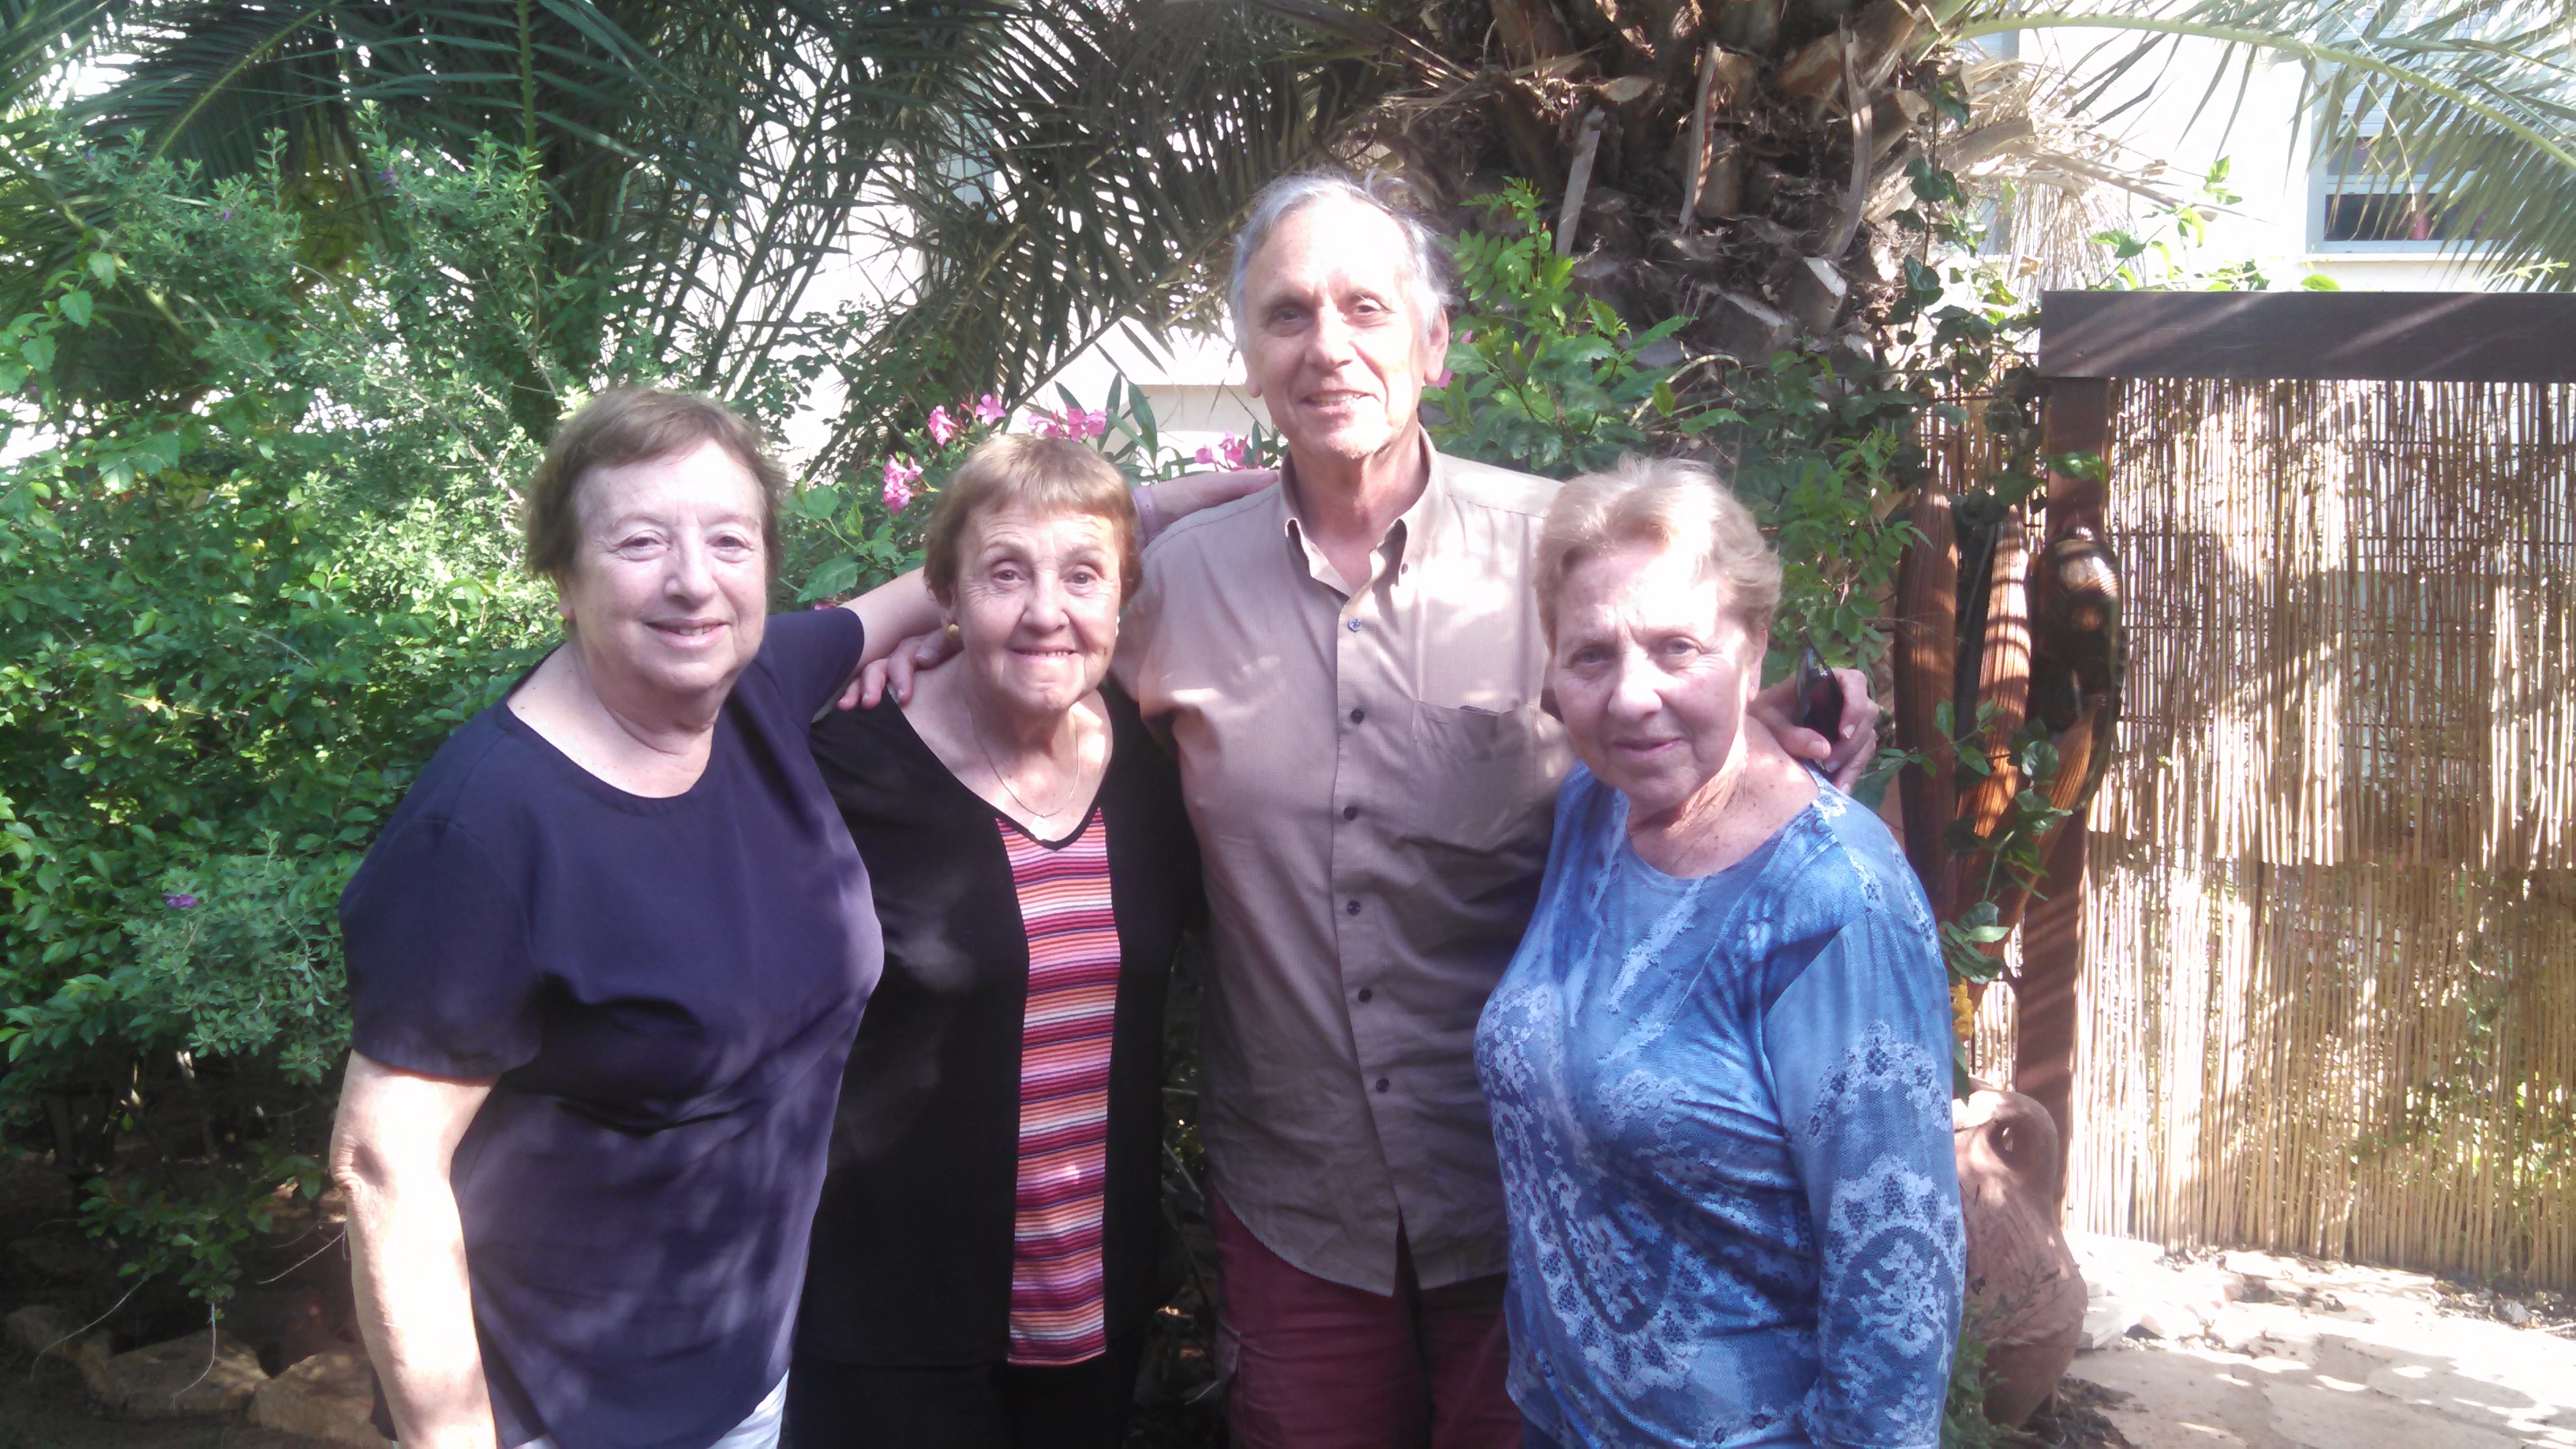 [Sisters of Leon Kanner, brother of Edward Joffe[[Photo by William Jacobson, May 2015, Israel]